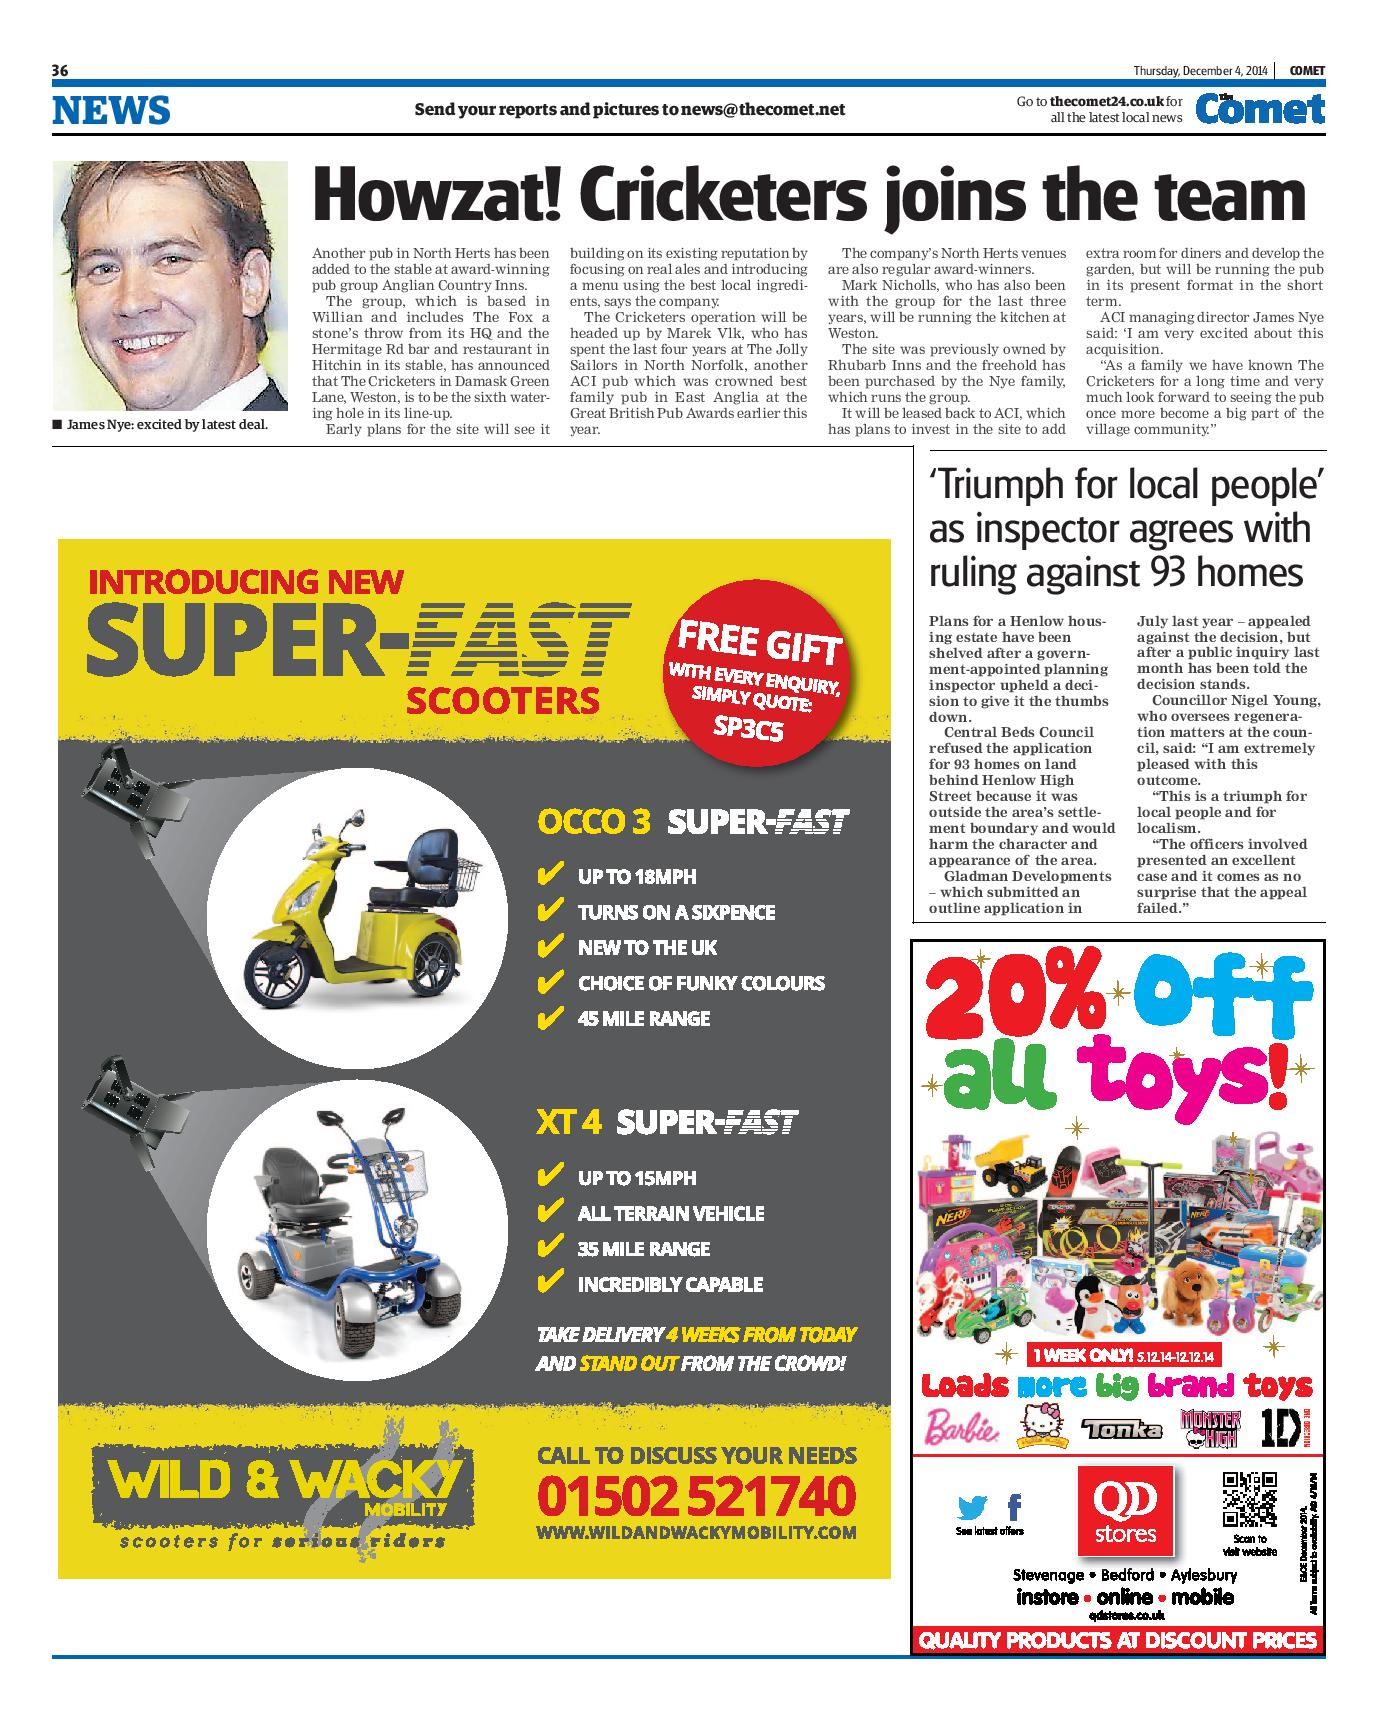 Howzat! Cricketers joins the team - COMET December 2014